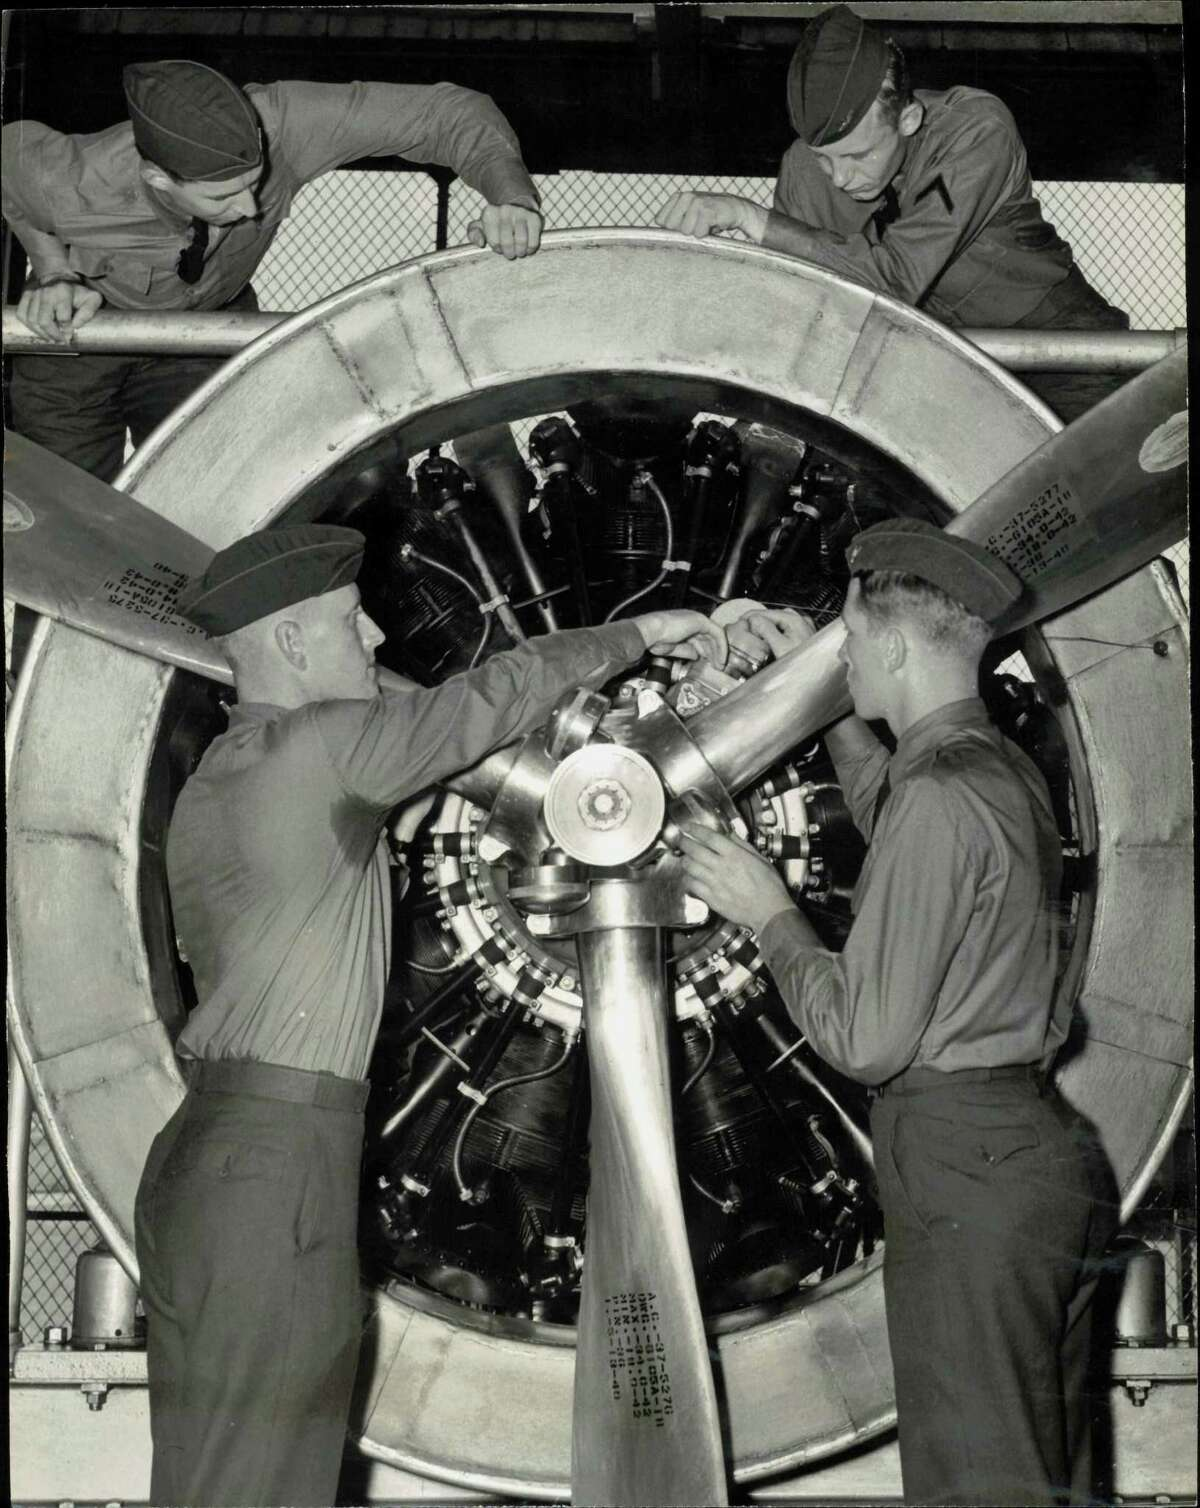 'Trouble-shooting' an air giant - It's a game of hide-and-seek for these flying cadets at Randolph Field, Texas, as they study a huge 900 horsepower plane motor. These cadets are checking a modern two speed supercharger radial engine, the same type used in Uncle Sam's four motored armed bombers.